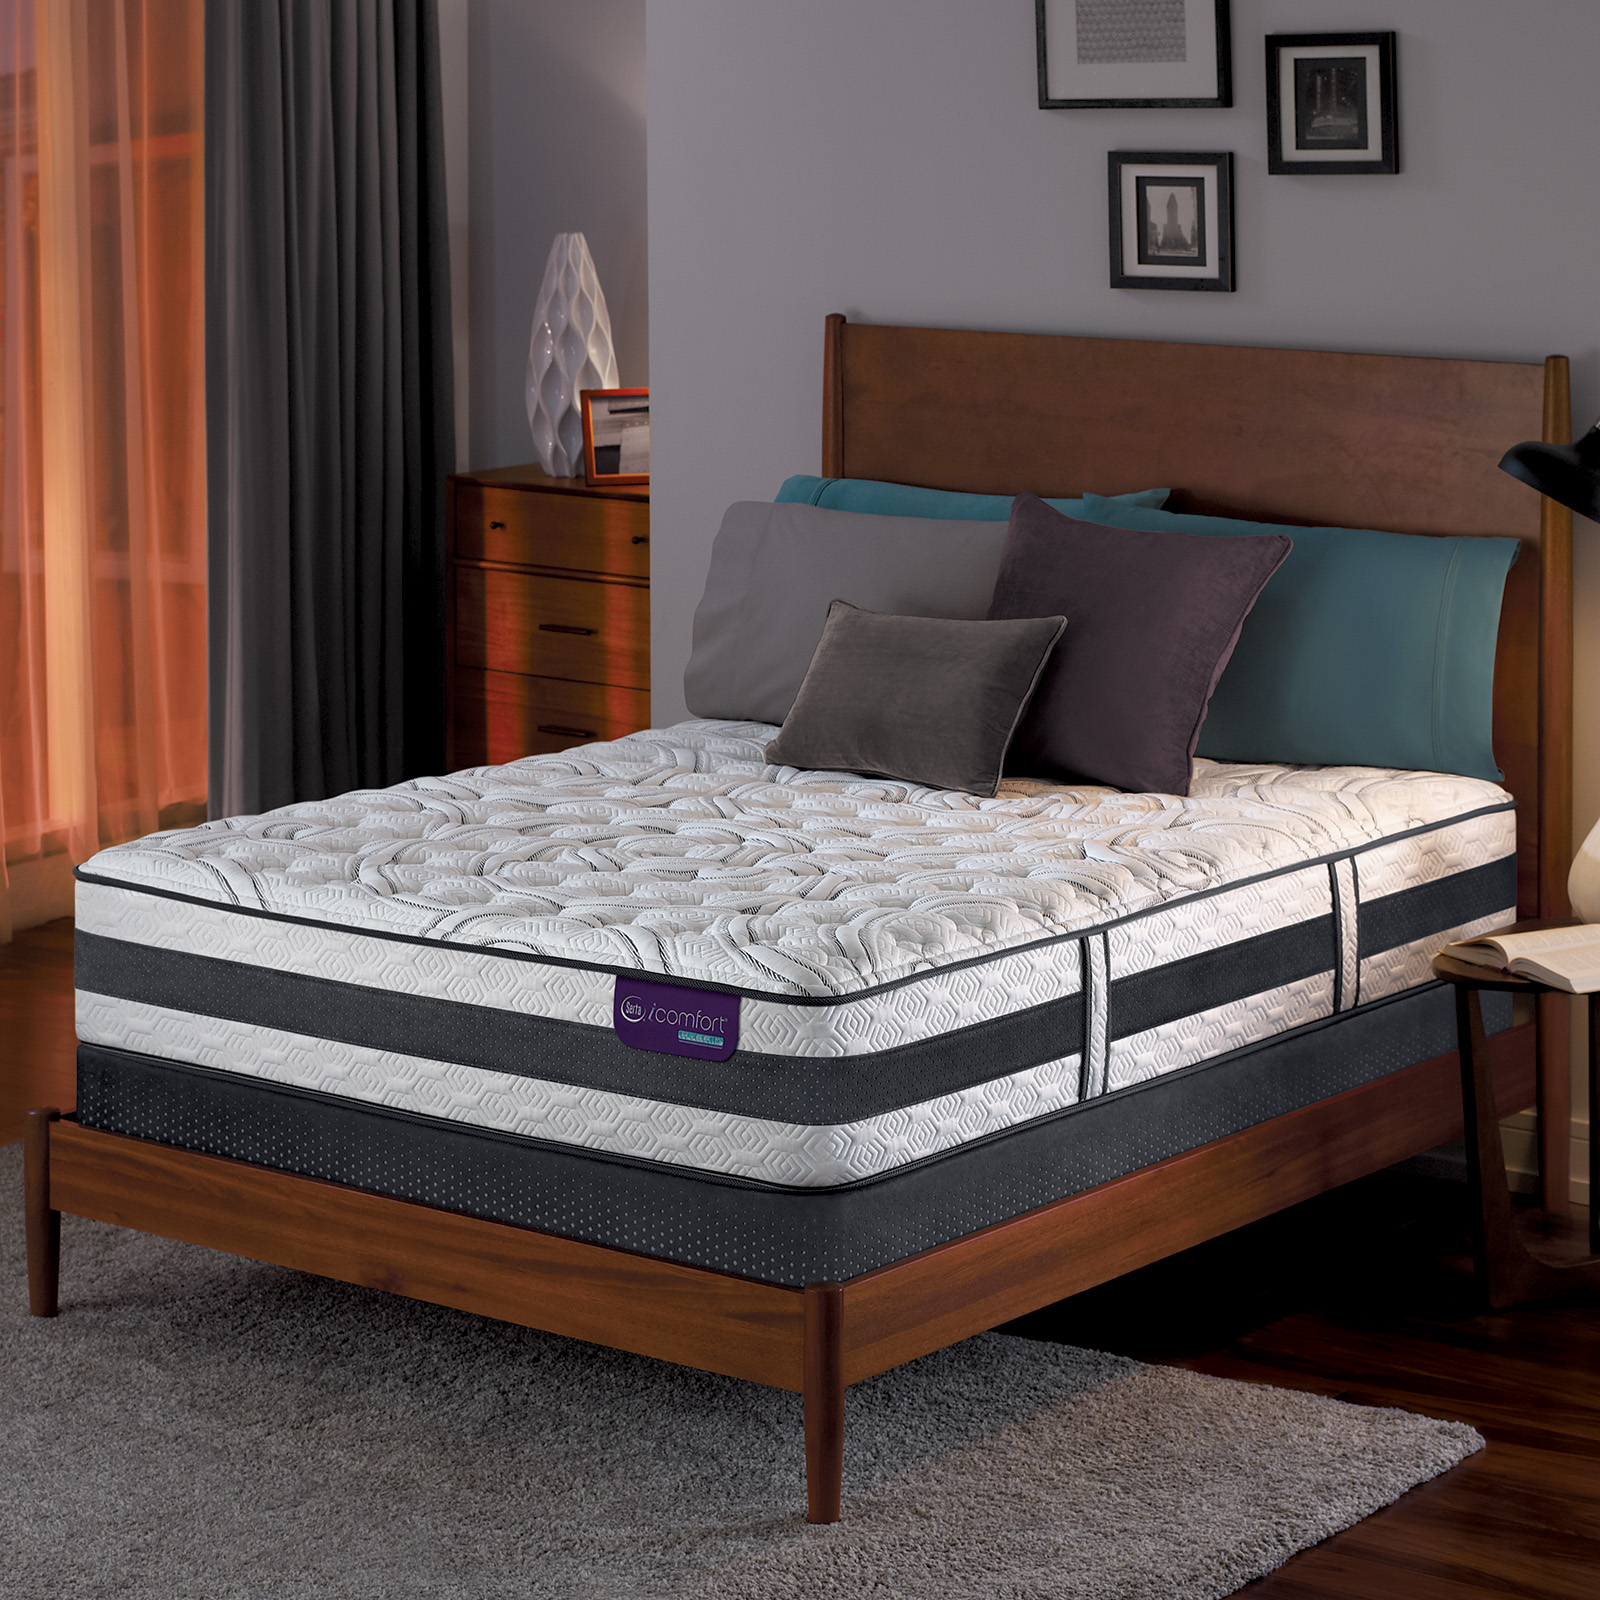 Serta Hybrid Recognition Extra Firm Queen Mattress